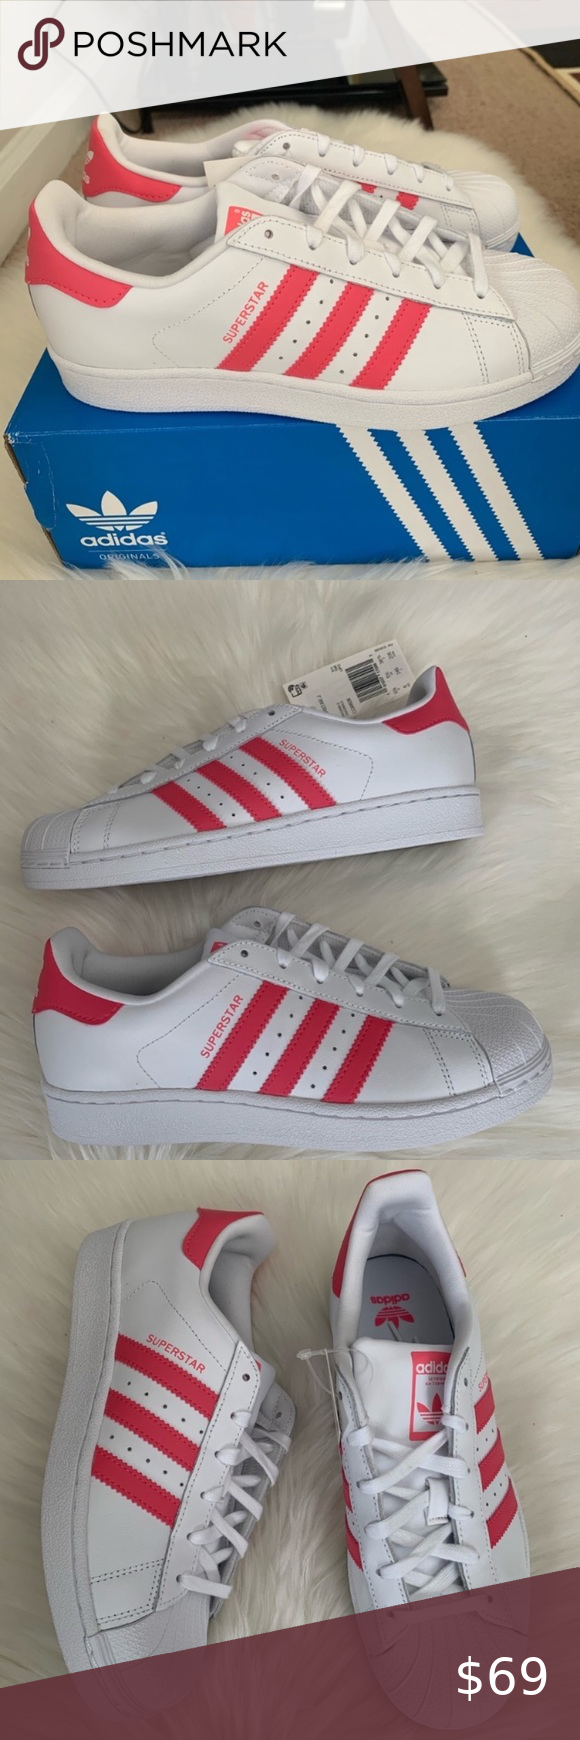 Adidas Superstar Youth Size 6 New Youth